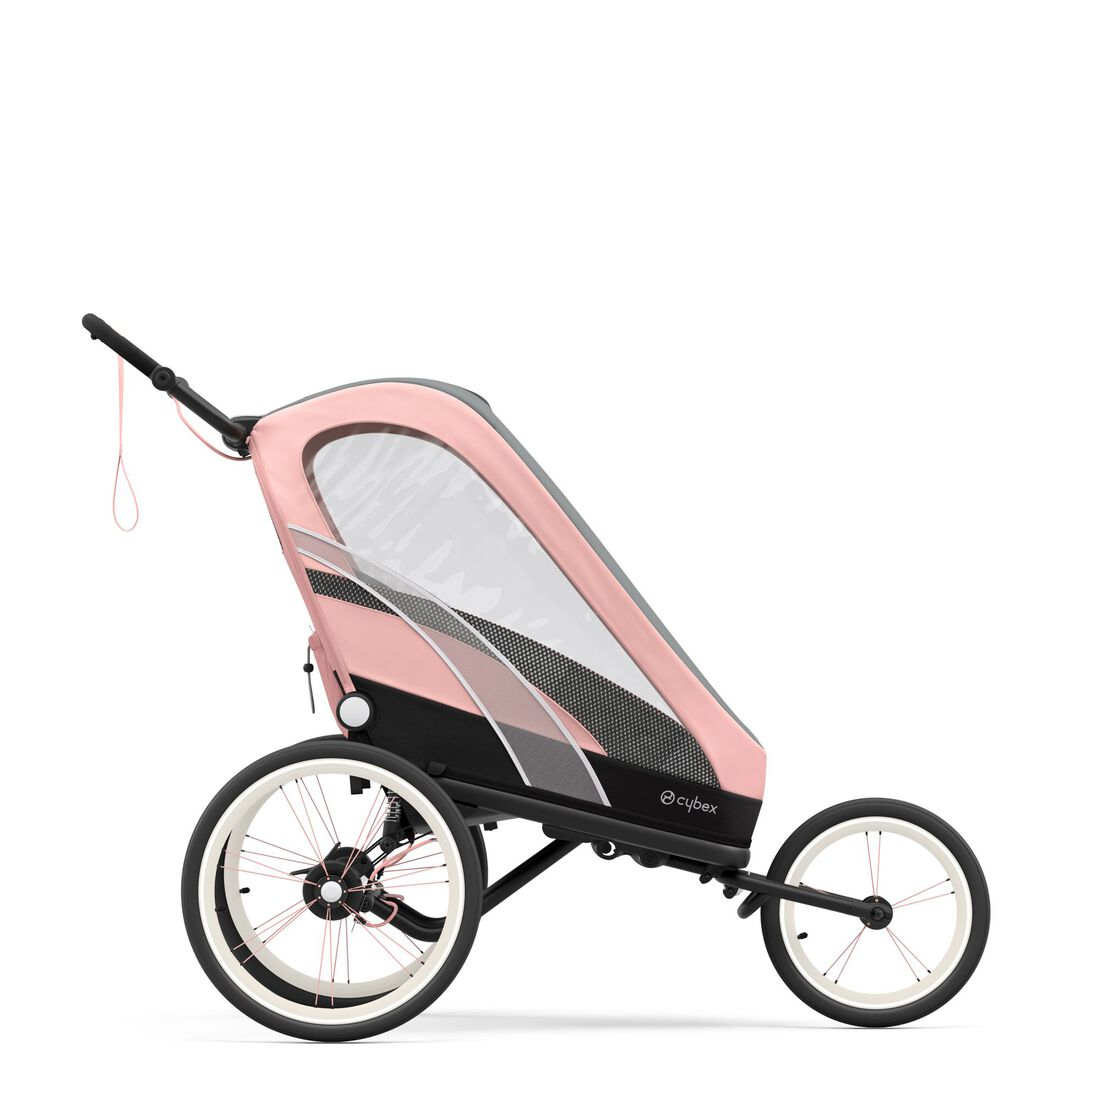 CYBEX Zeno Seat Pack - Silver Pink in Silver Pink large image number 4